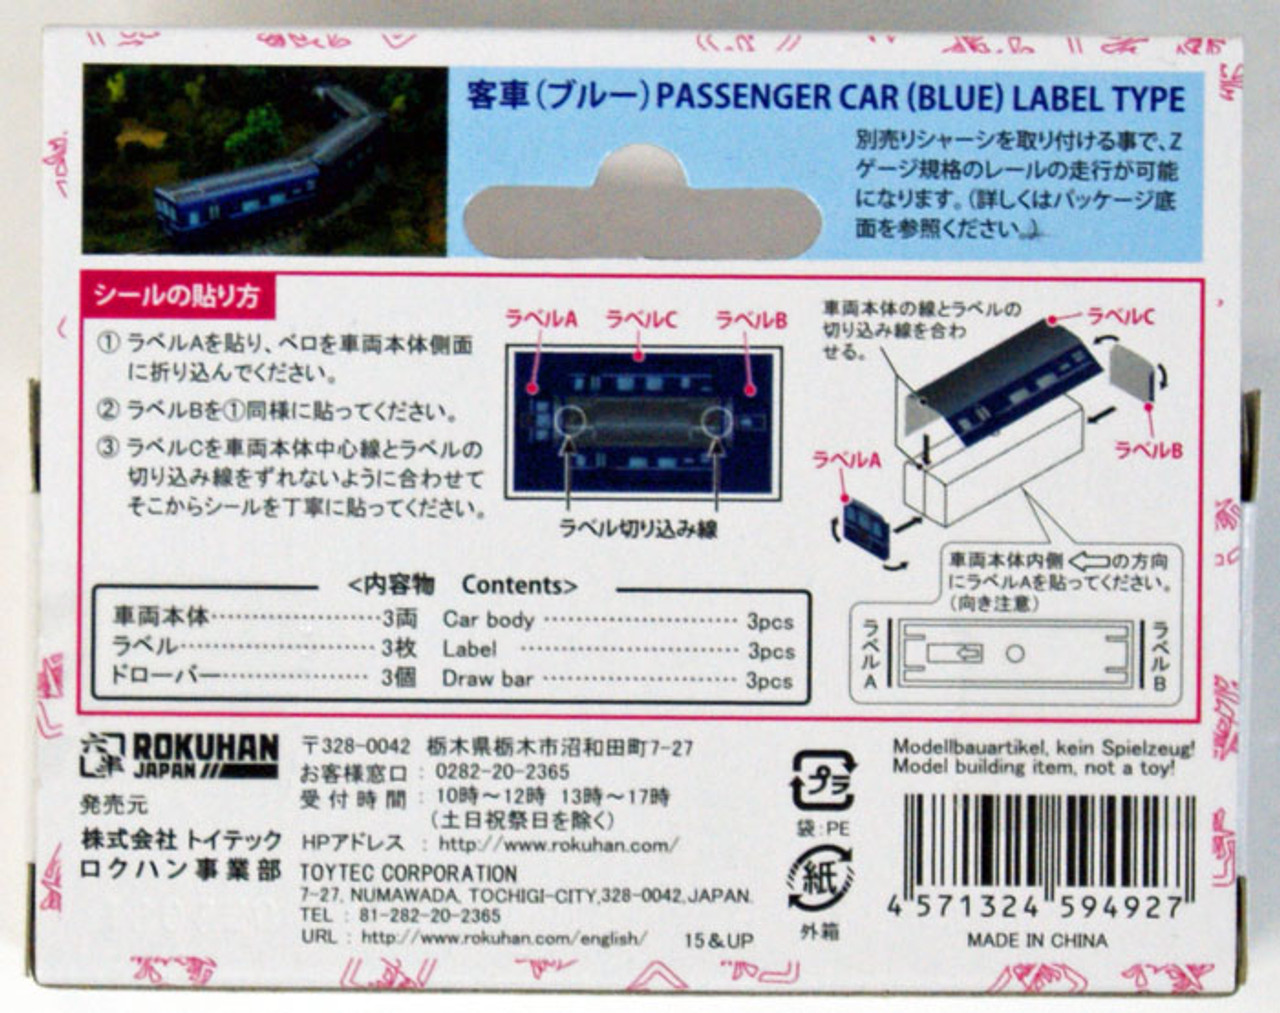 Z gauge Z Shorty Passenger Car label type SA007-1 model railroad passenge blue